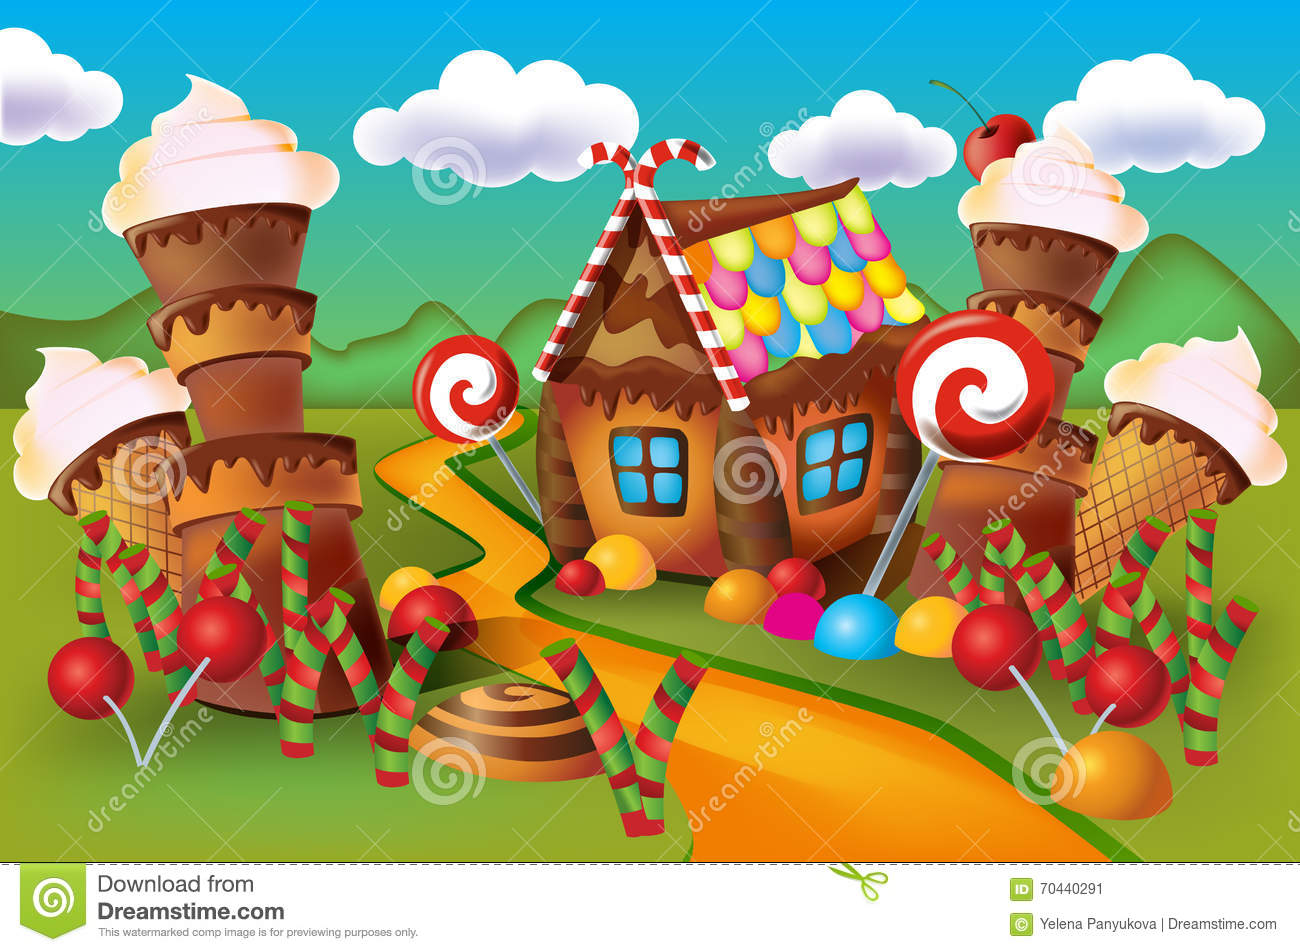 Cake Decoration At Home Illustration Of Sweet House Of Cookies And Candy Stock